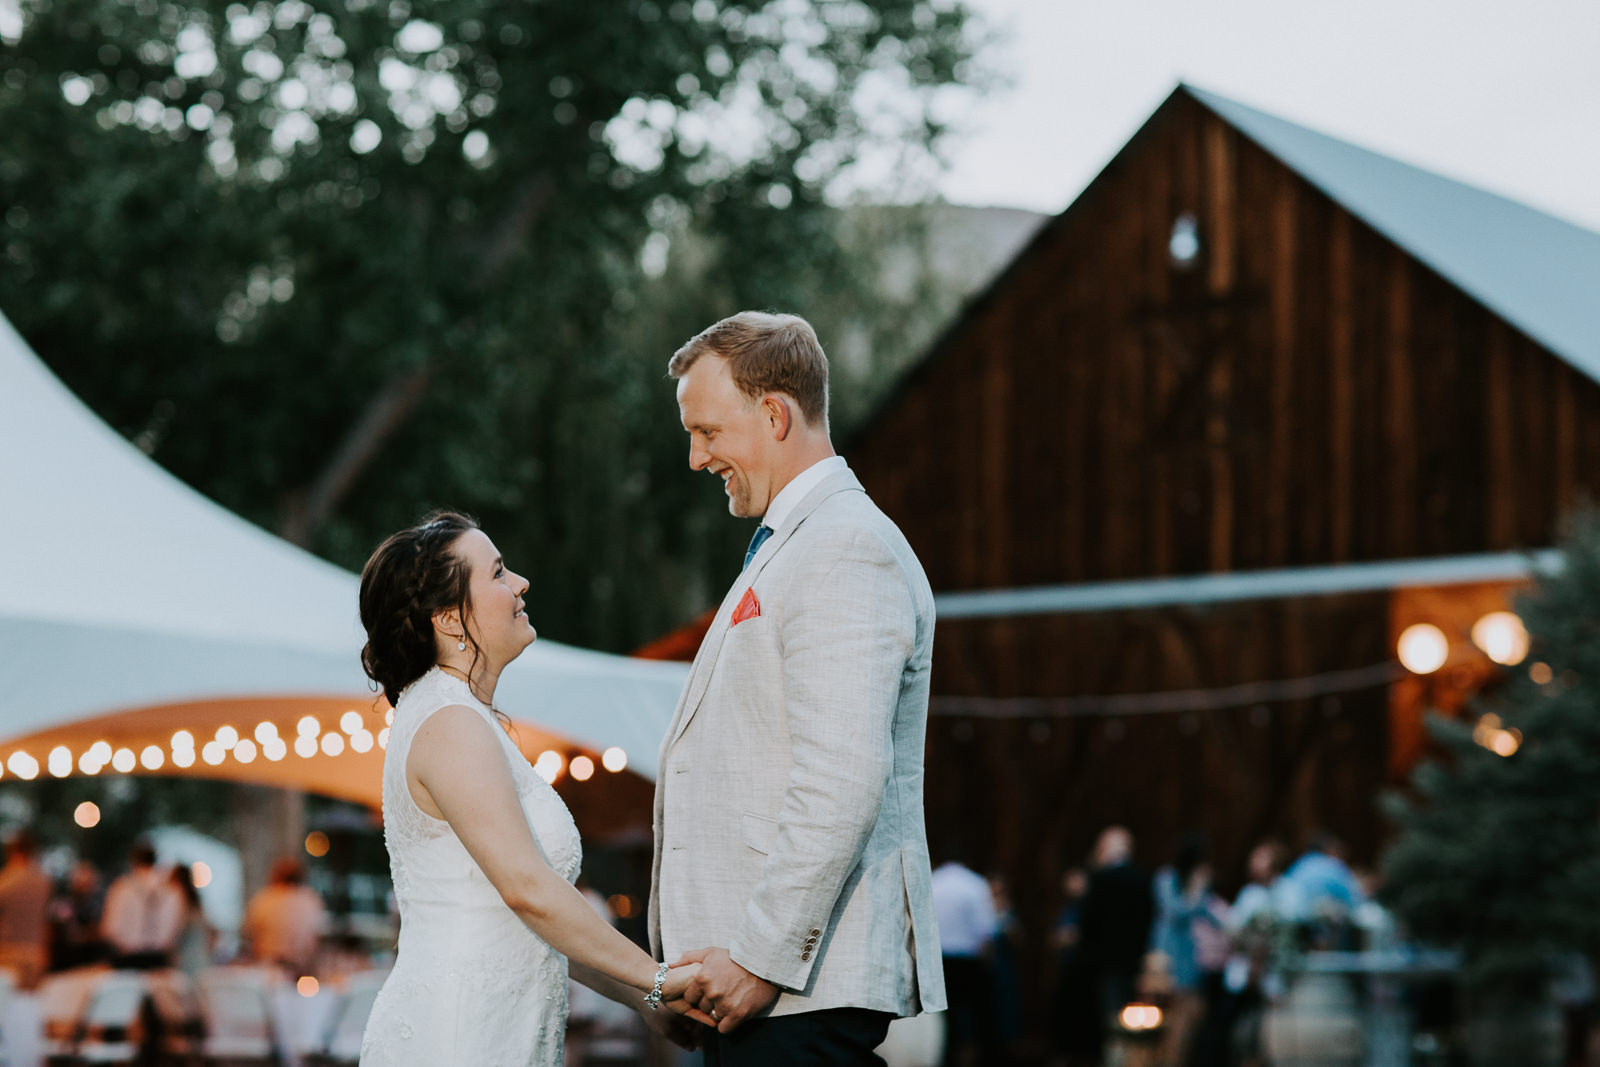 Wedding photograph of bride and groom holding hands facing each other with barn and tent in background